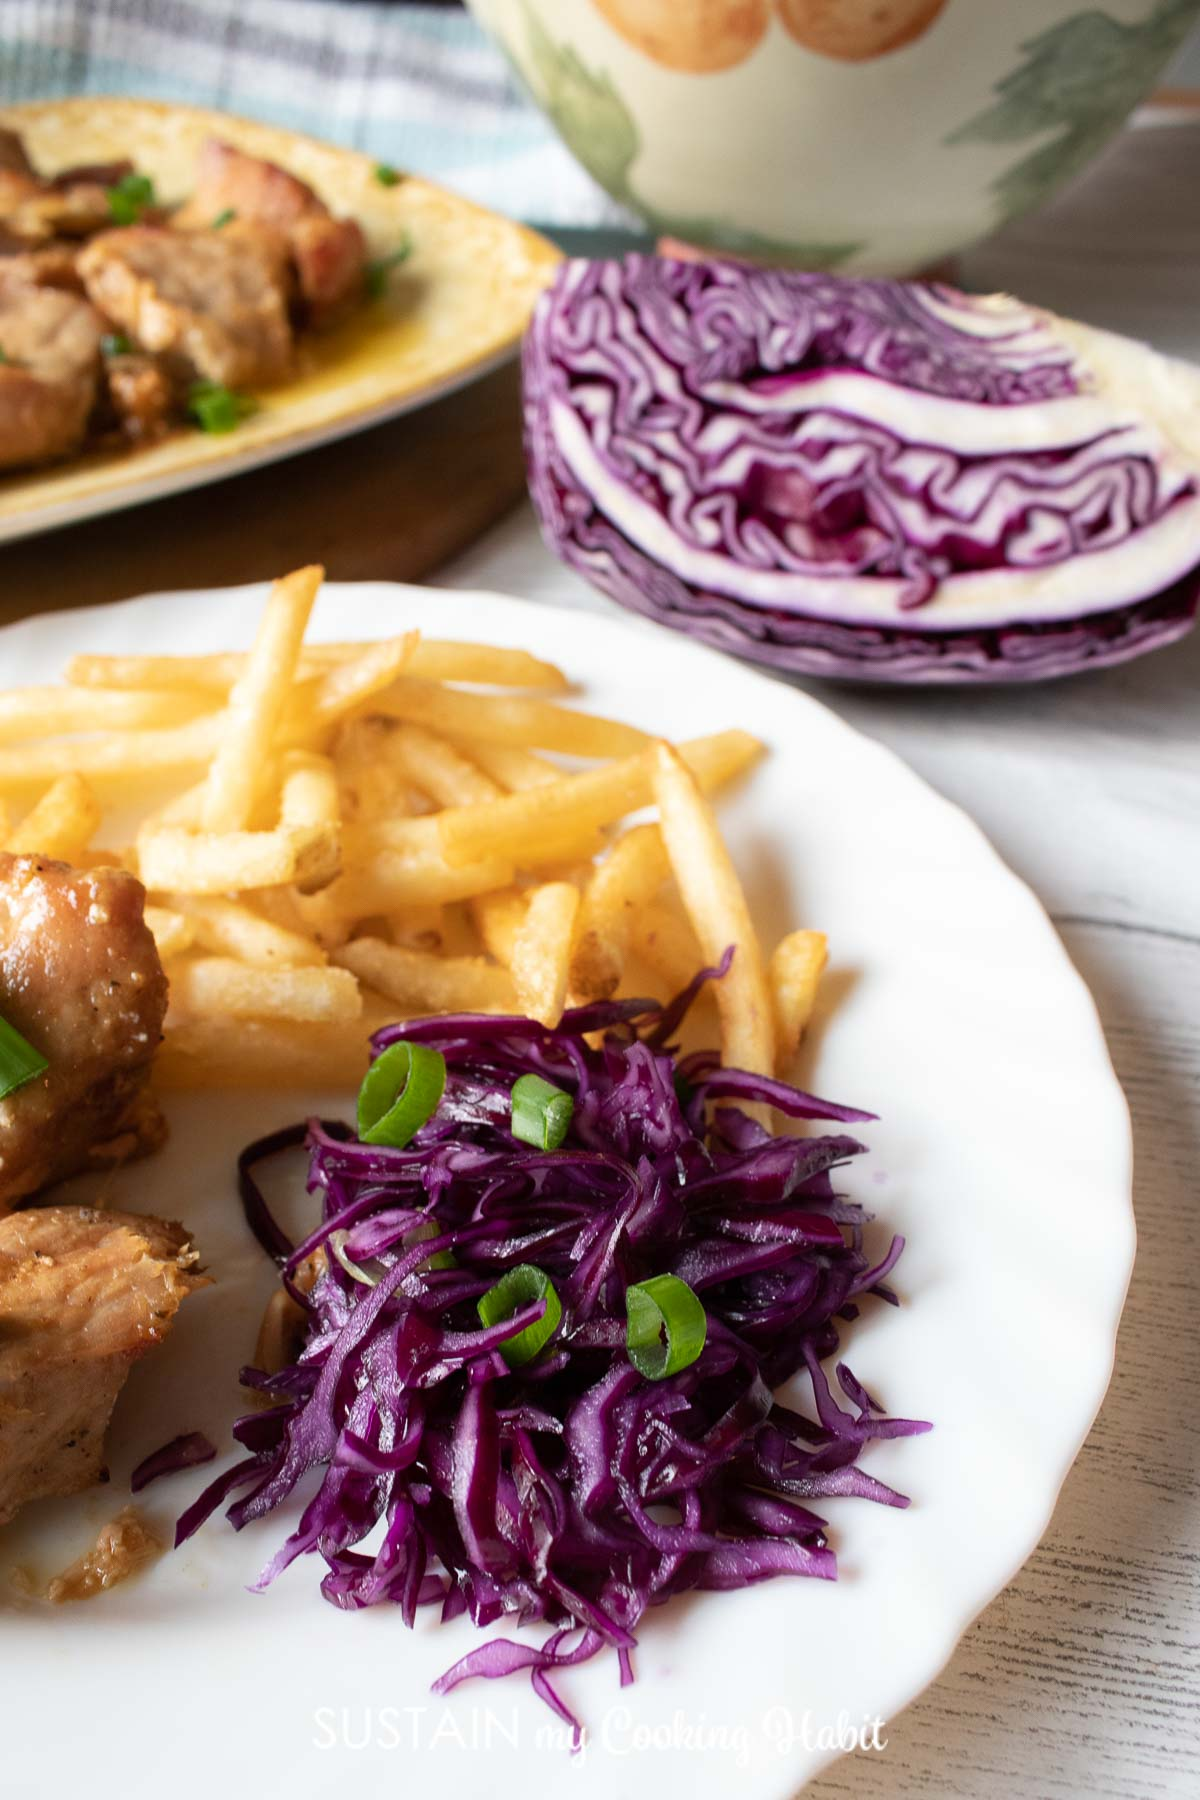 Red cabbage coleslaw served on a plate with chicken and french fries.